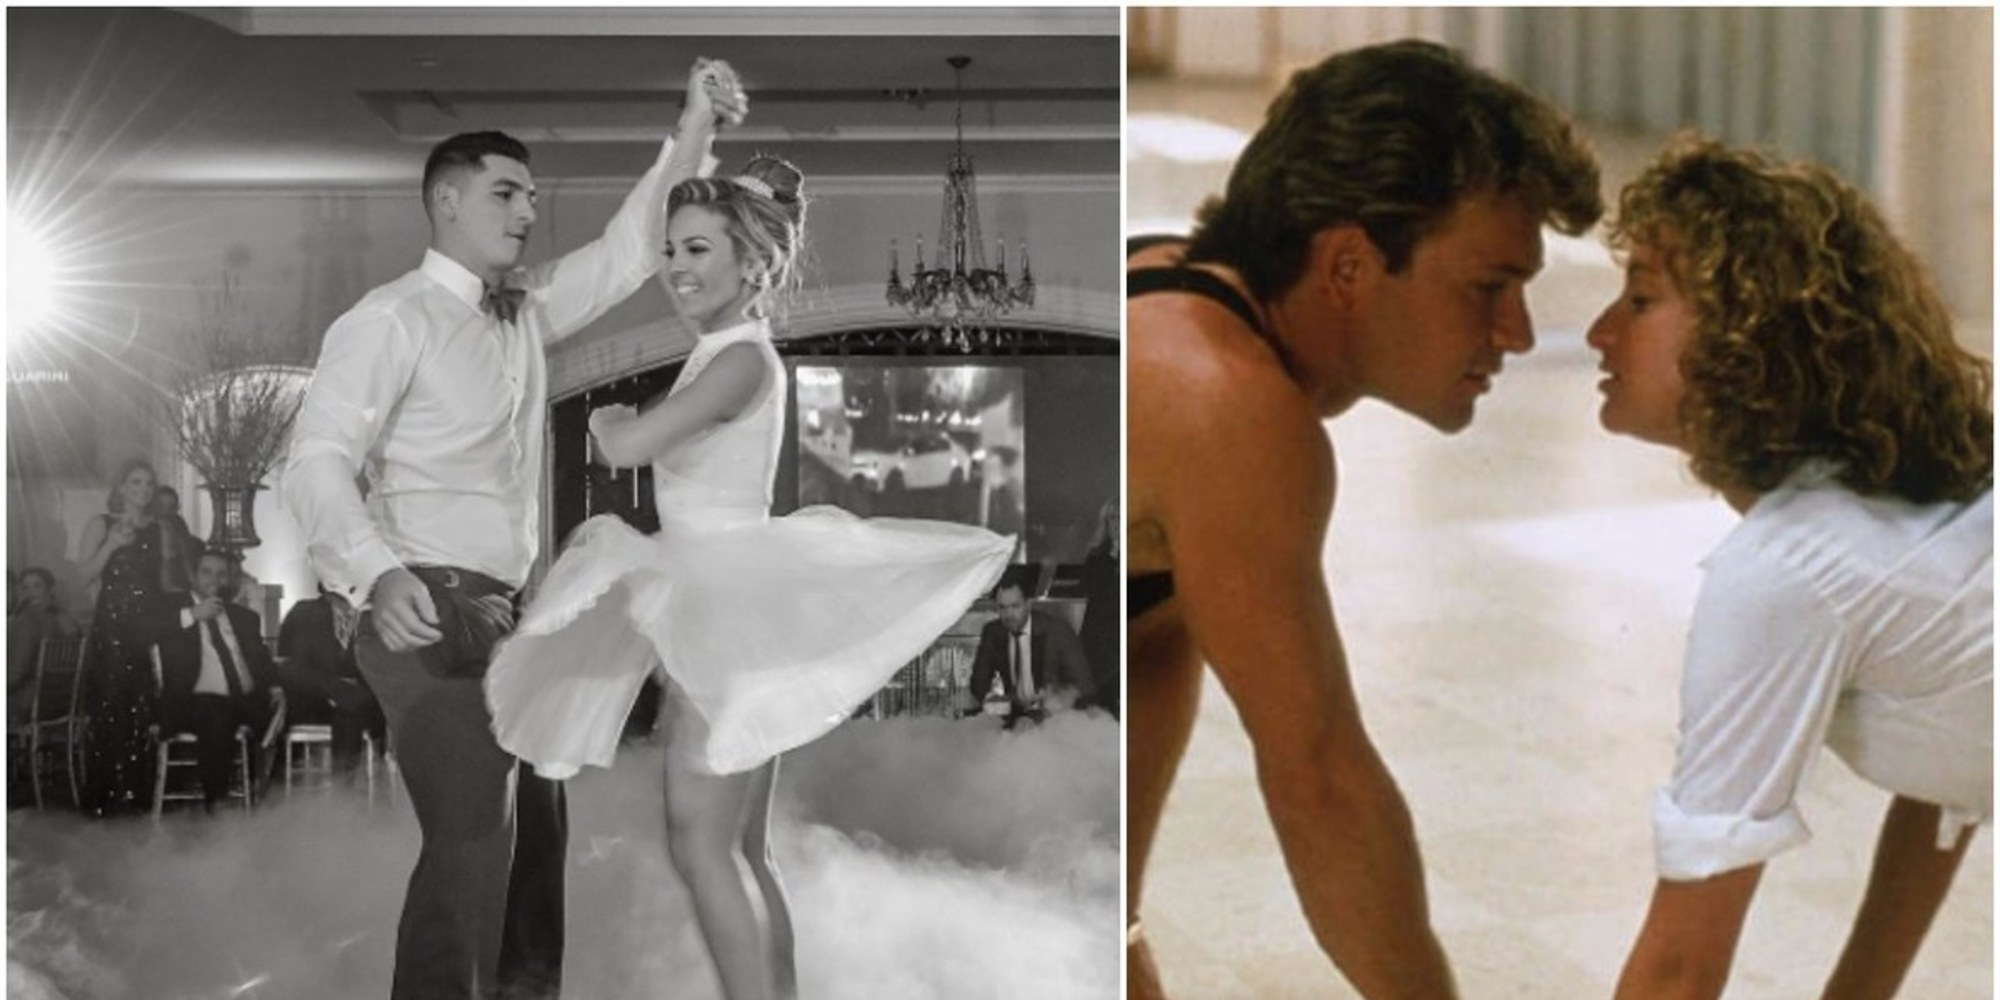 There Are Cool Wedding Dances, and Then This Couple Is Nailing The Final Dance of 'Dirty Dancing'